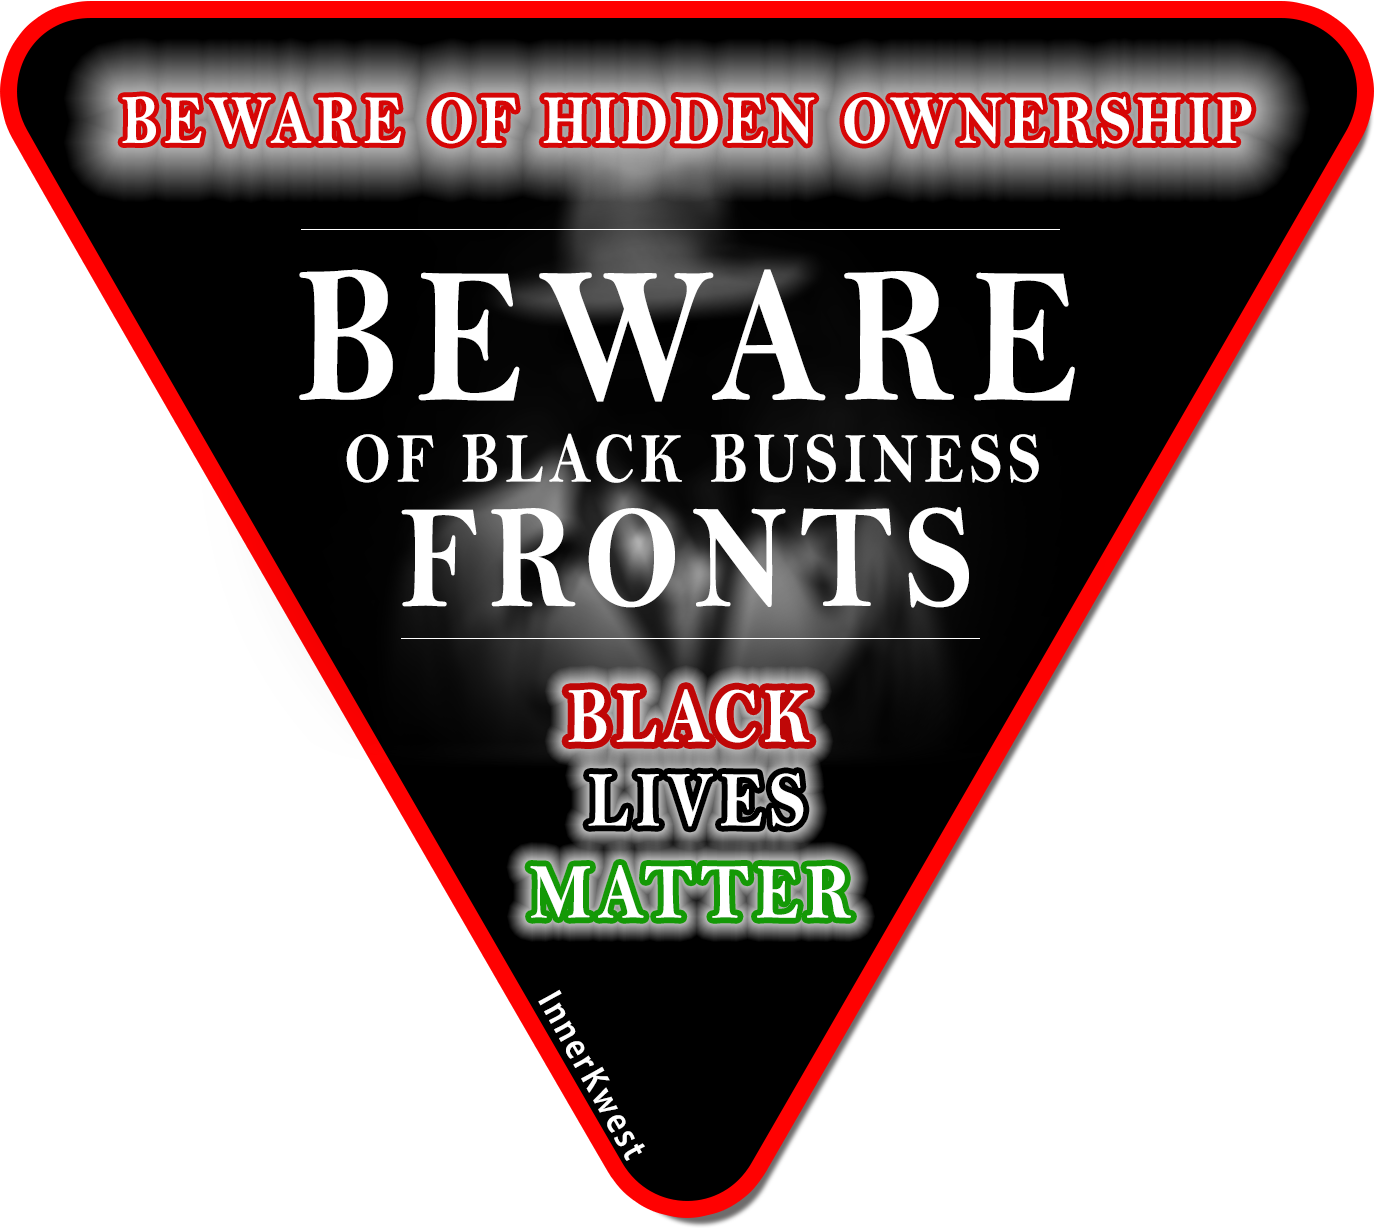 Beware of Black Business Fronts